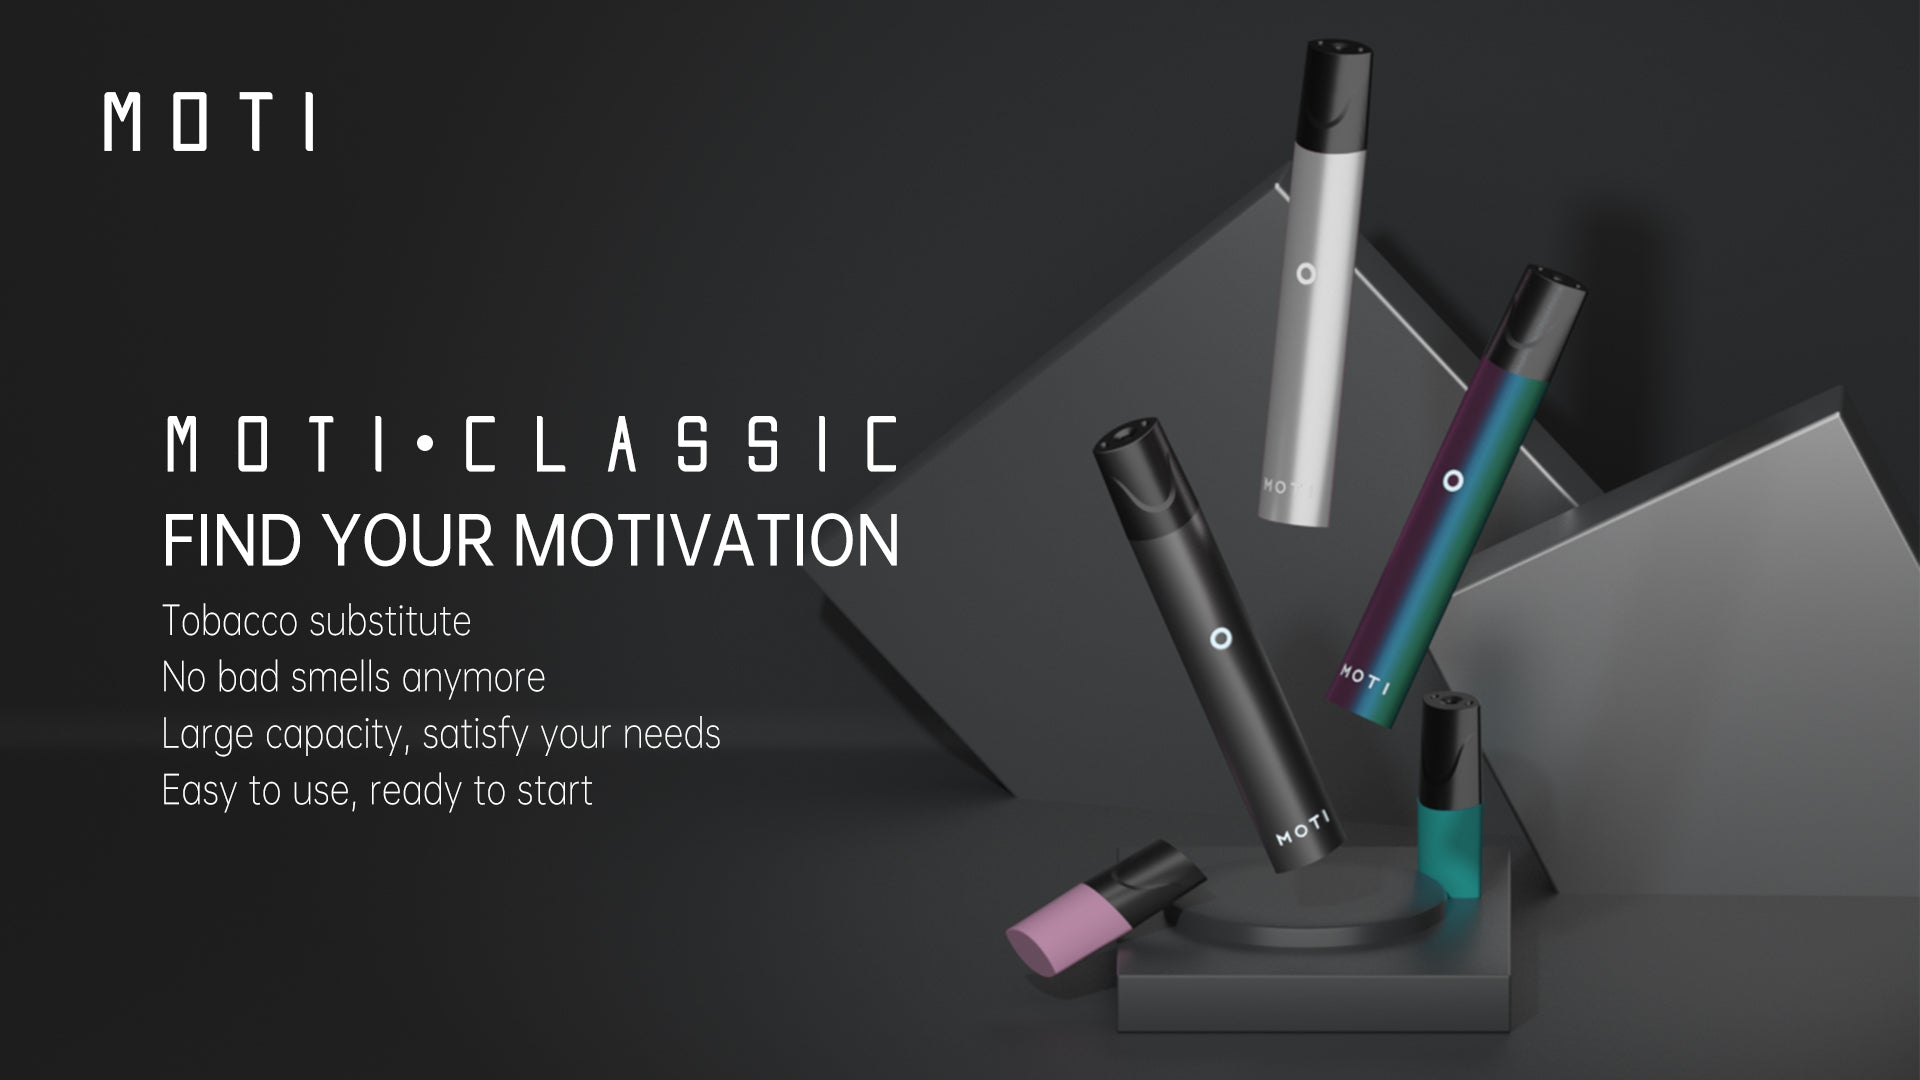 MOTI Classic e-cig smoking alternative